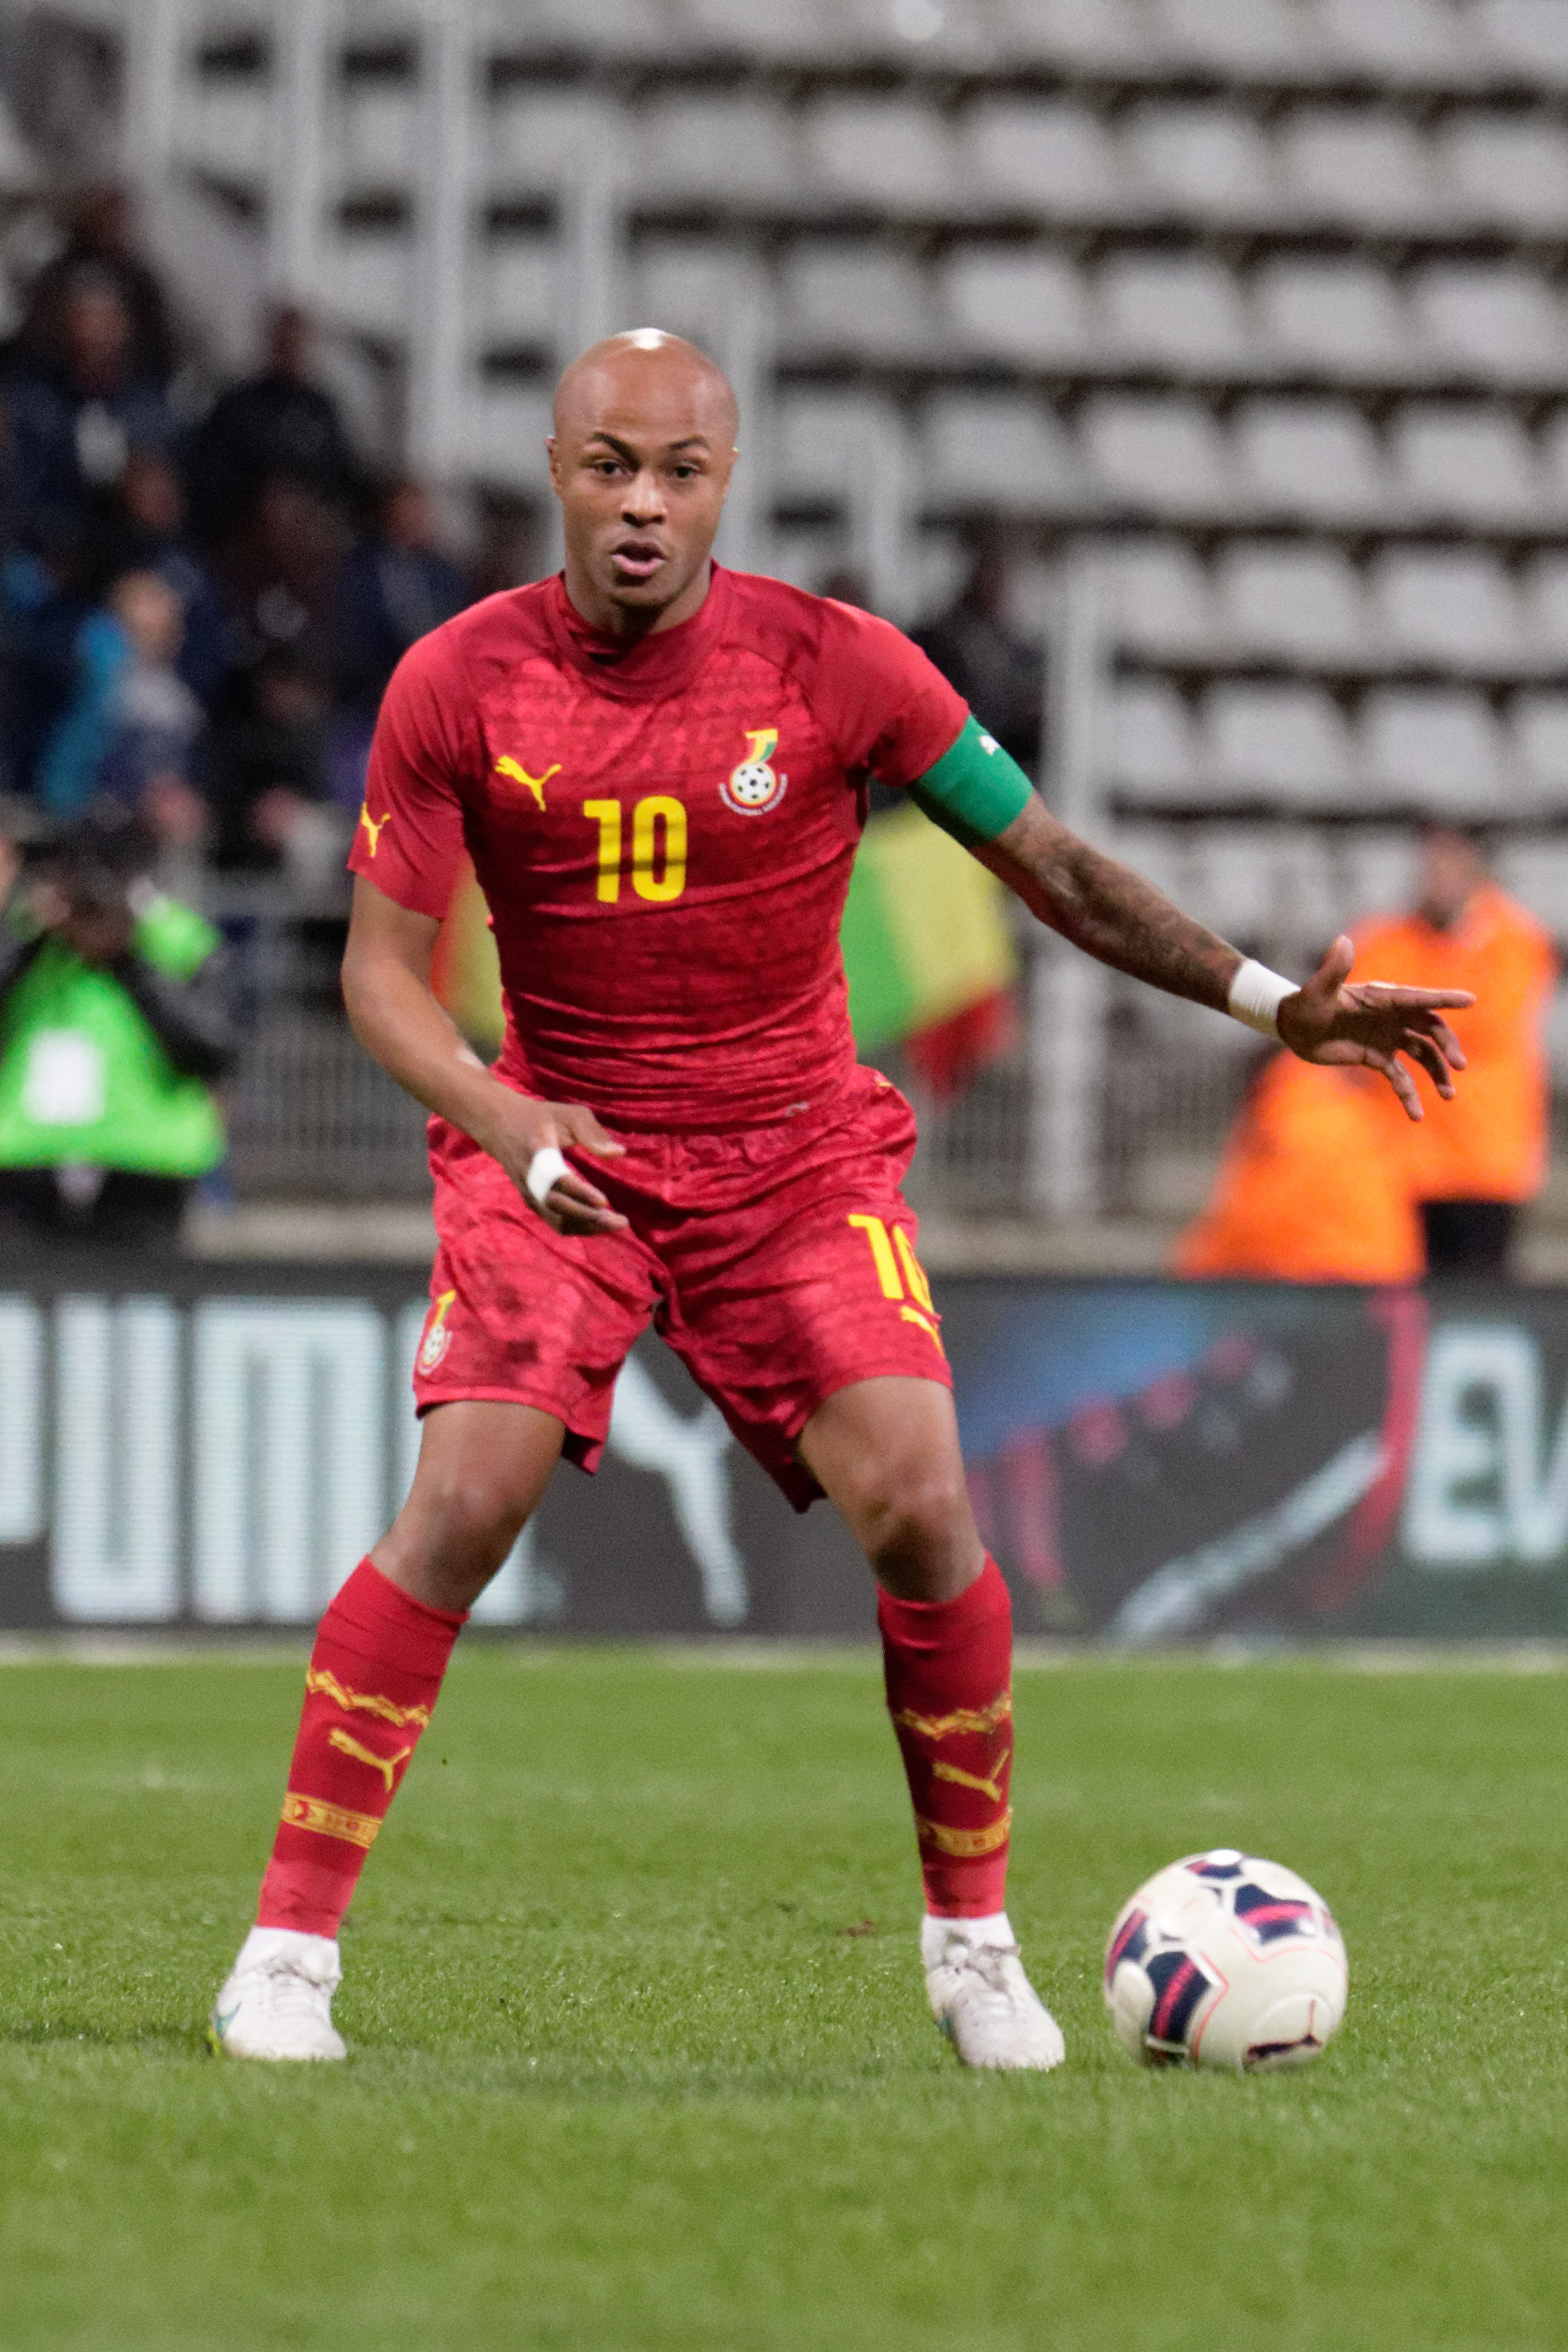 The 29-year old son of father Abedi Pele and mother Maha Ayew, André Ayew in 2019 photo. André Ayew earned a  million dollar salary - leaving the net worth at 22 million in 2019